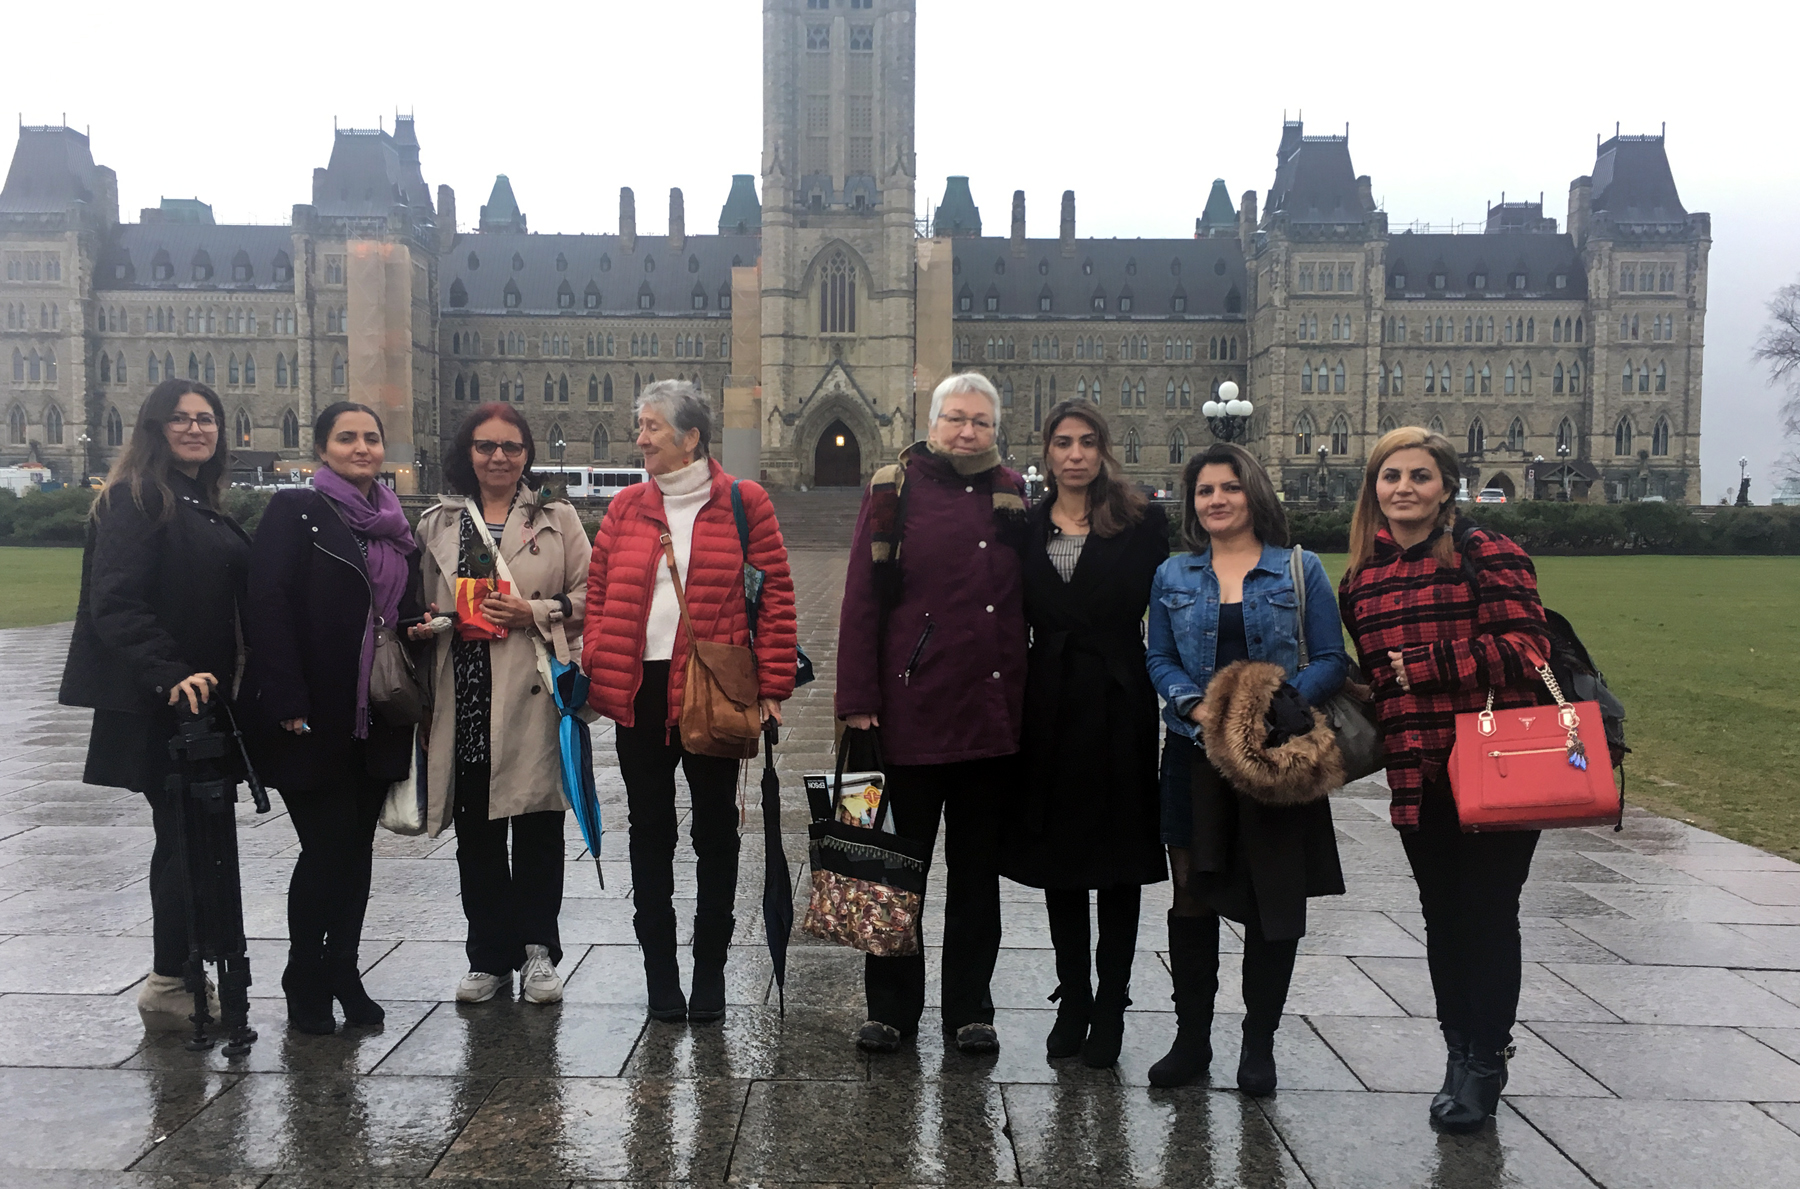 Dilkhaz, Nada, Ayshan, Lindsay, Chris, Adiba, Dlal and Aveen arriving at Parliament to deliver the petition.